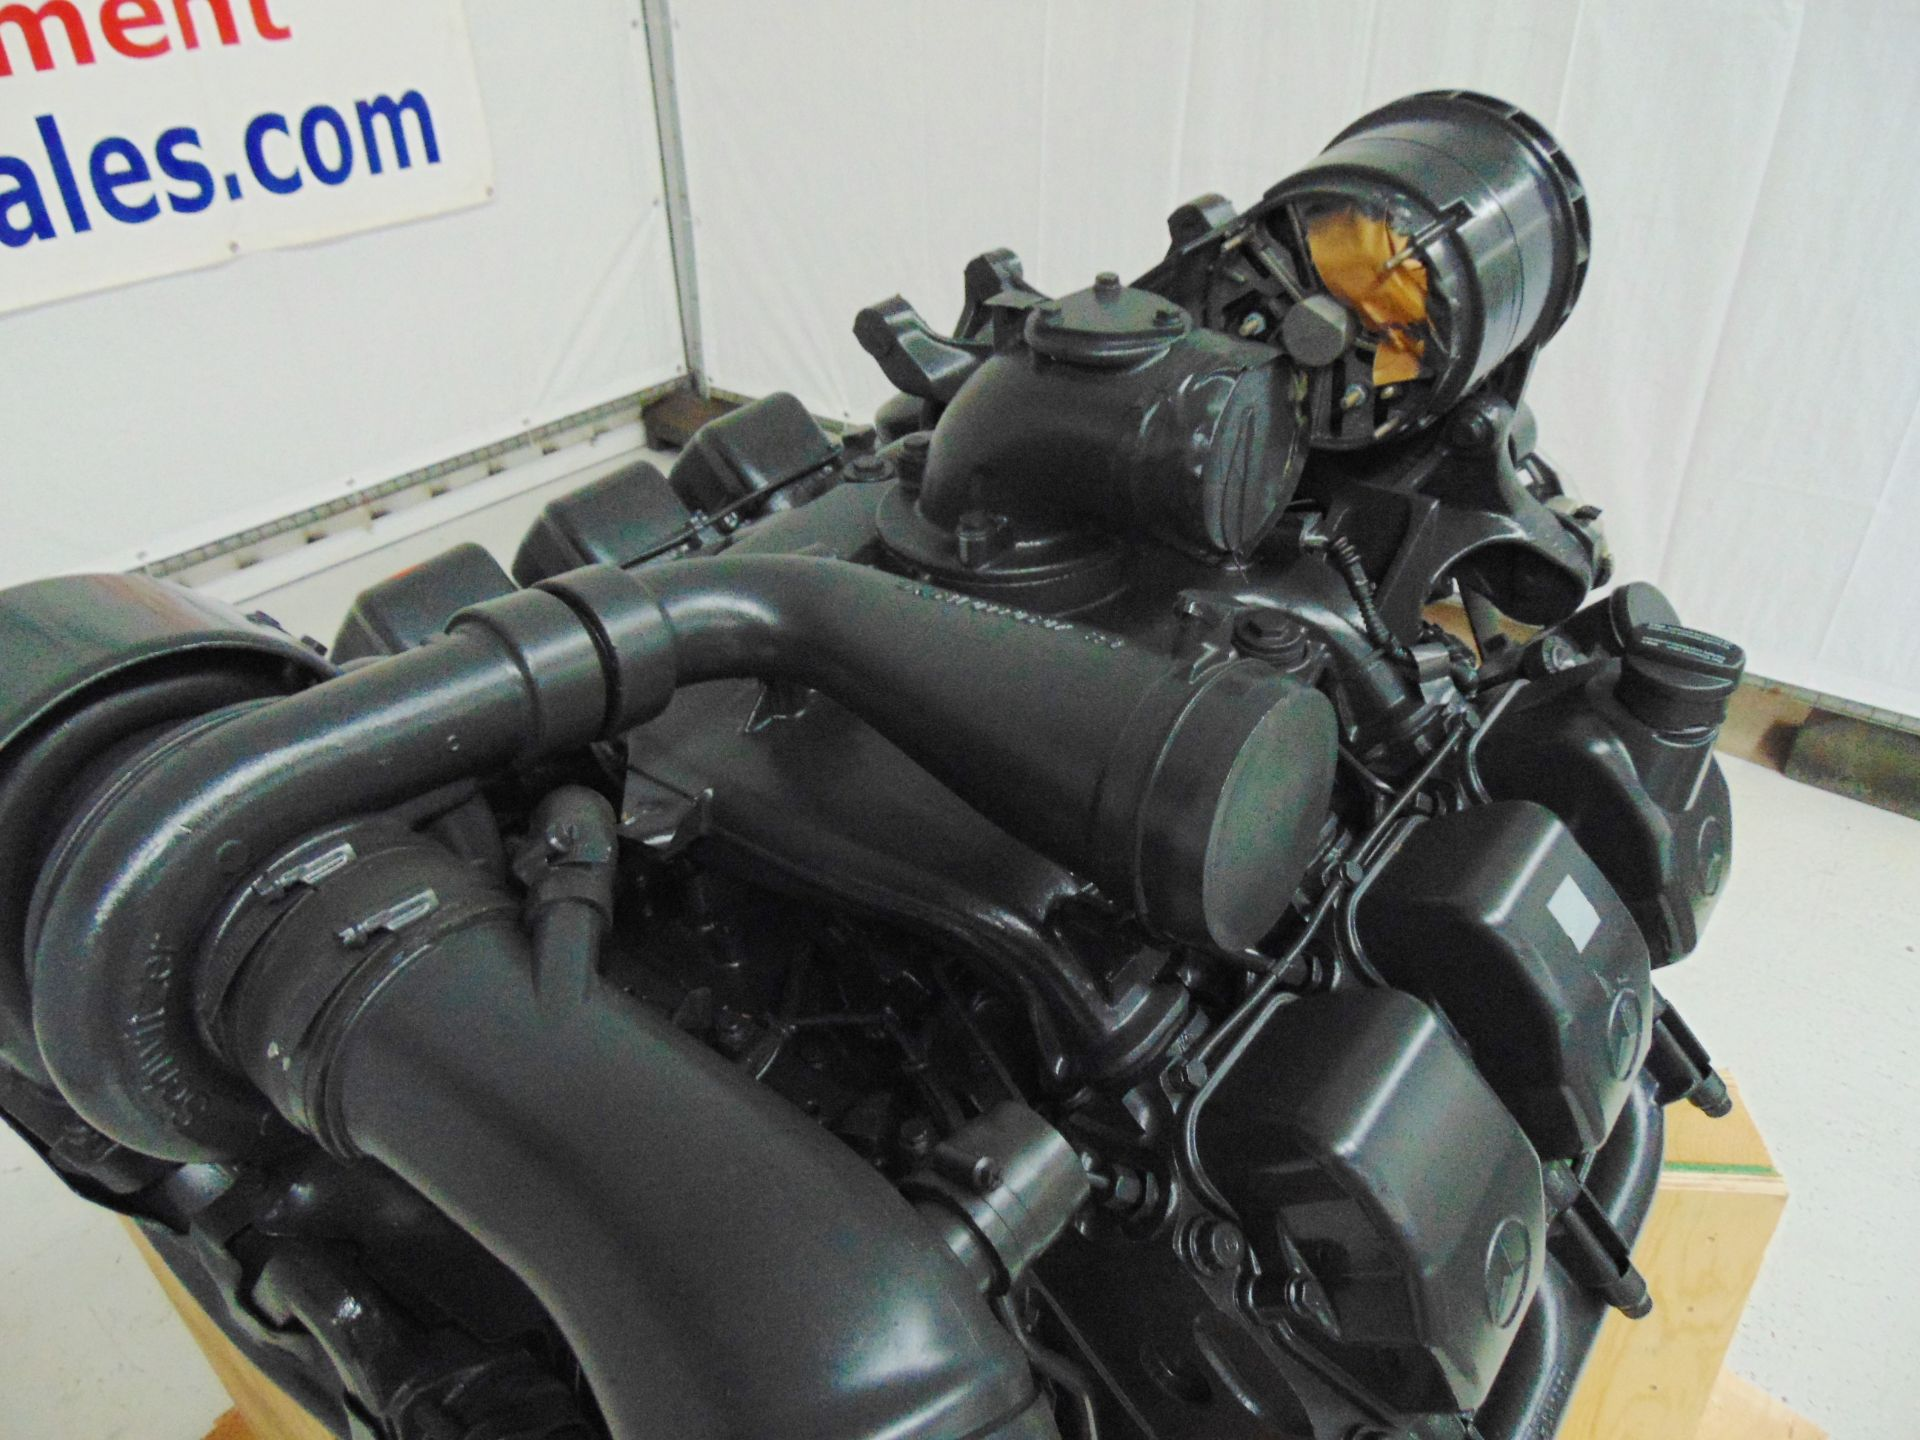 Lot 18 - Factory Reconditioned Mercedes-Benz OM501LA V6 Turbo Diesel Engine